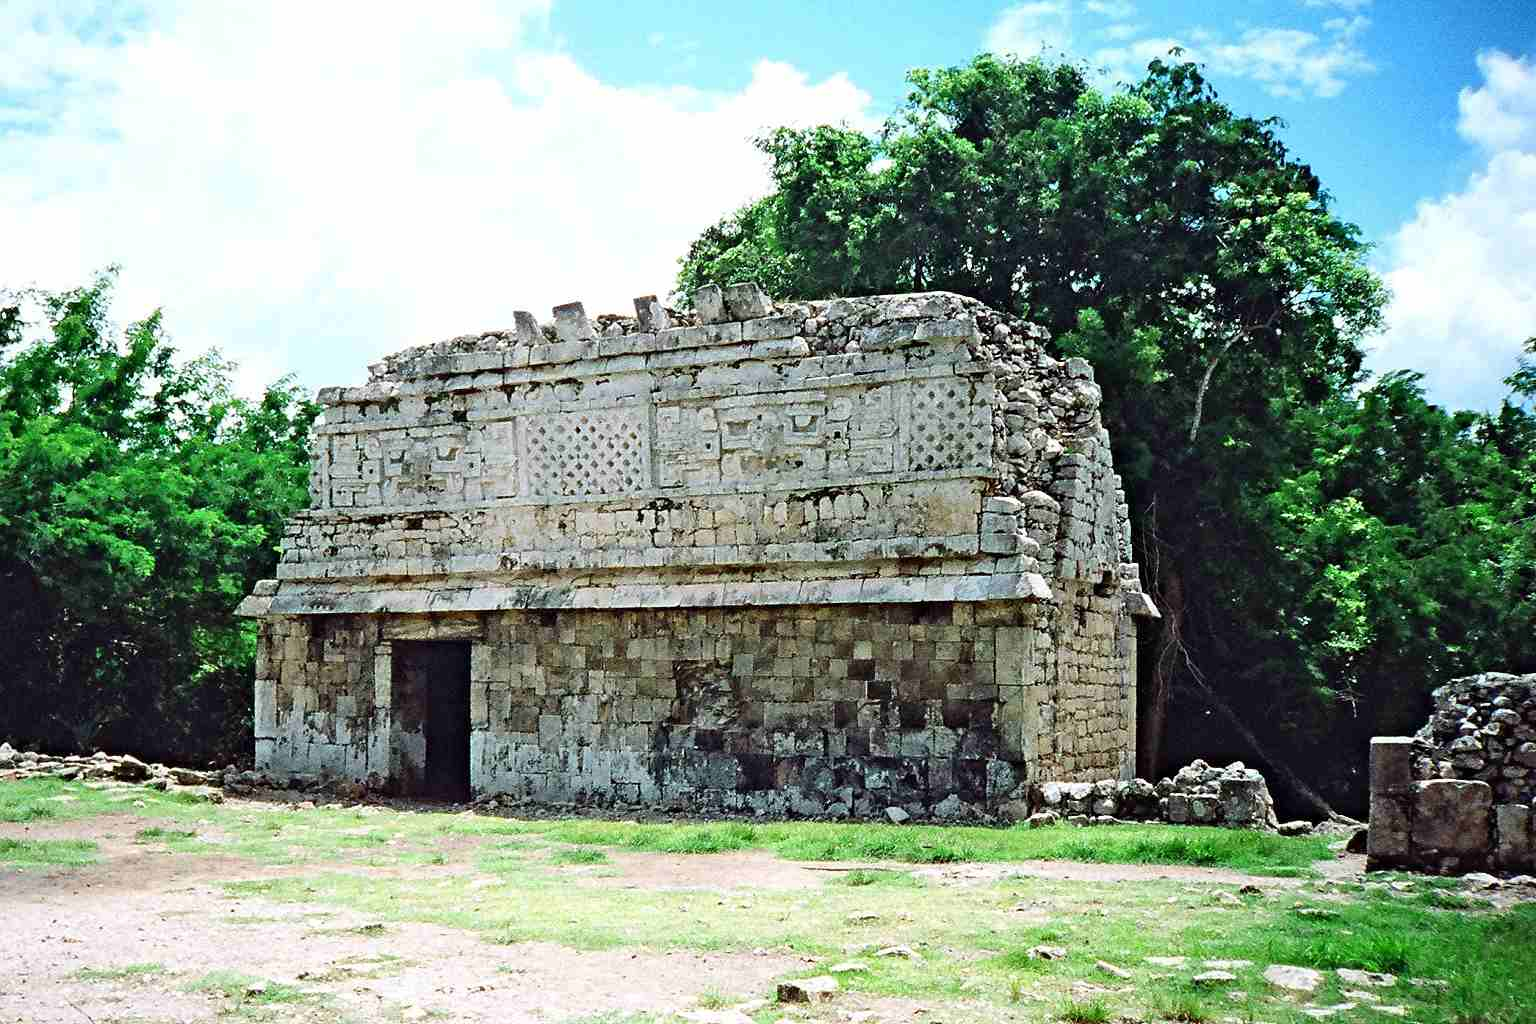 A well preserved Maya house in the Puuc style at Chichén Itzá